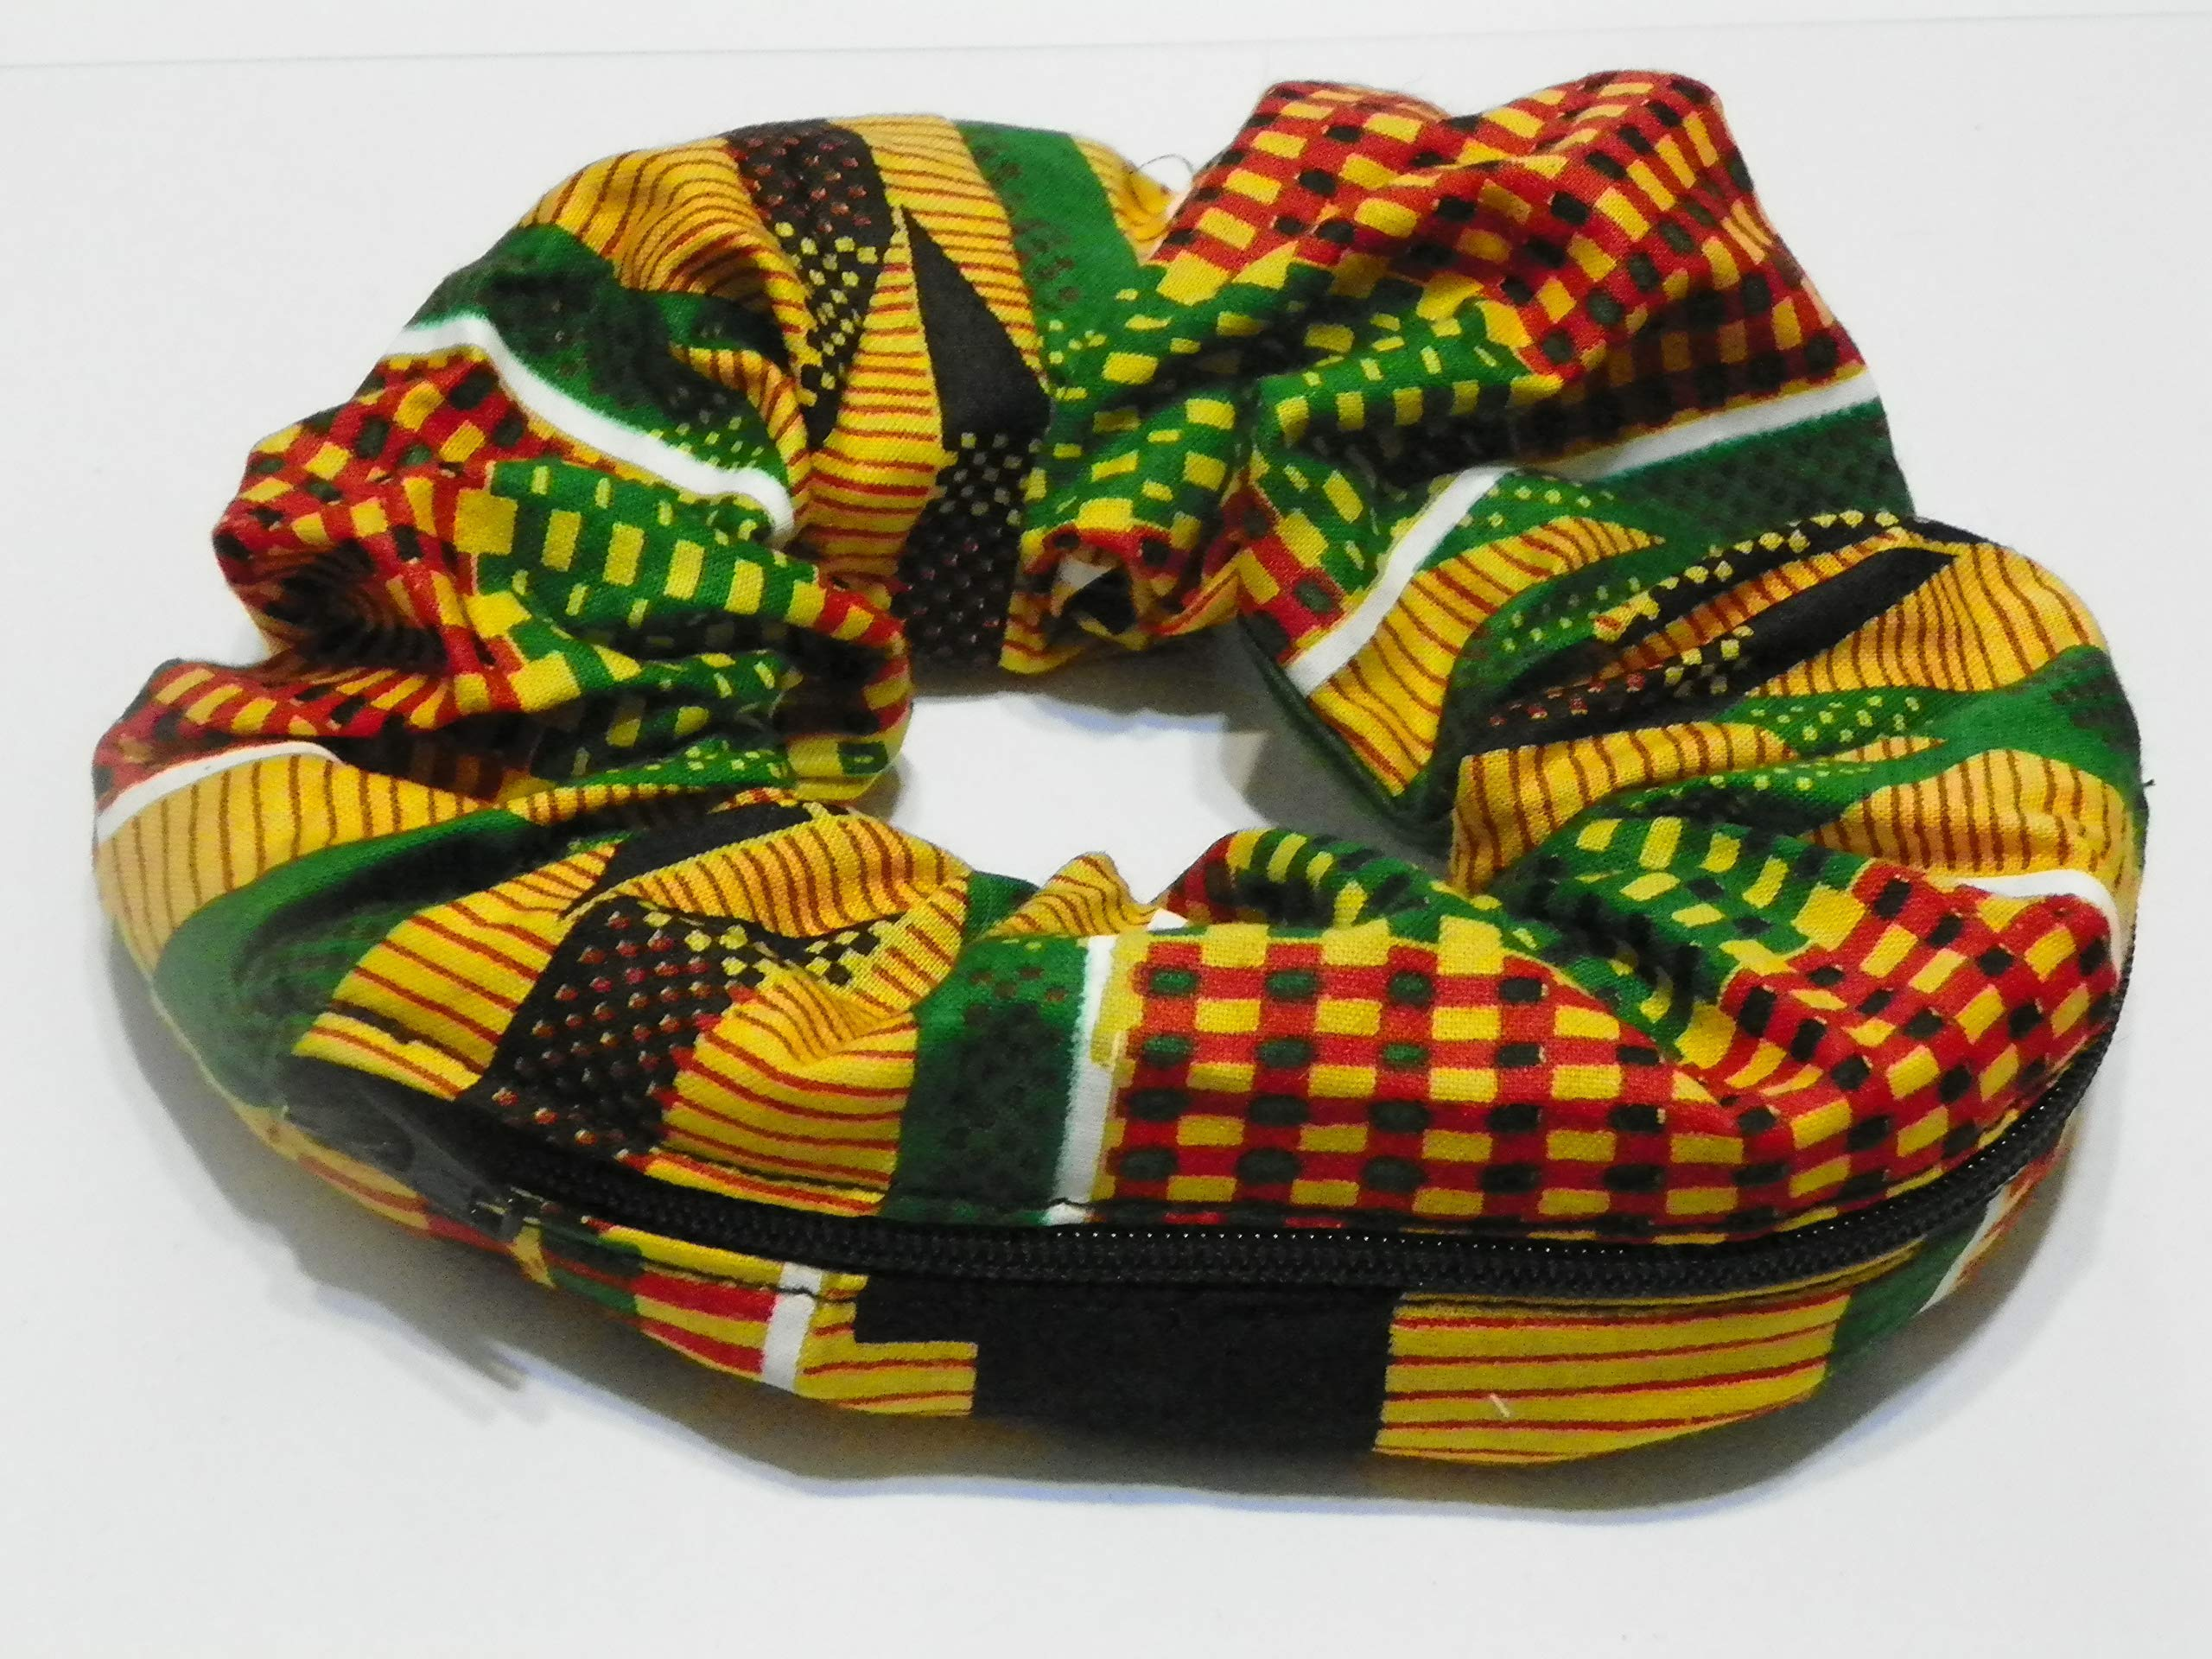 African multi color print design Handmade Scrunchie Purse w zipper storage Great for Gym Swim Jog by Yvonnes Alterations & Designs